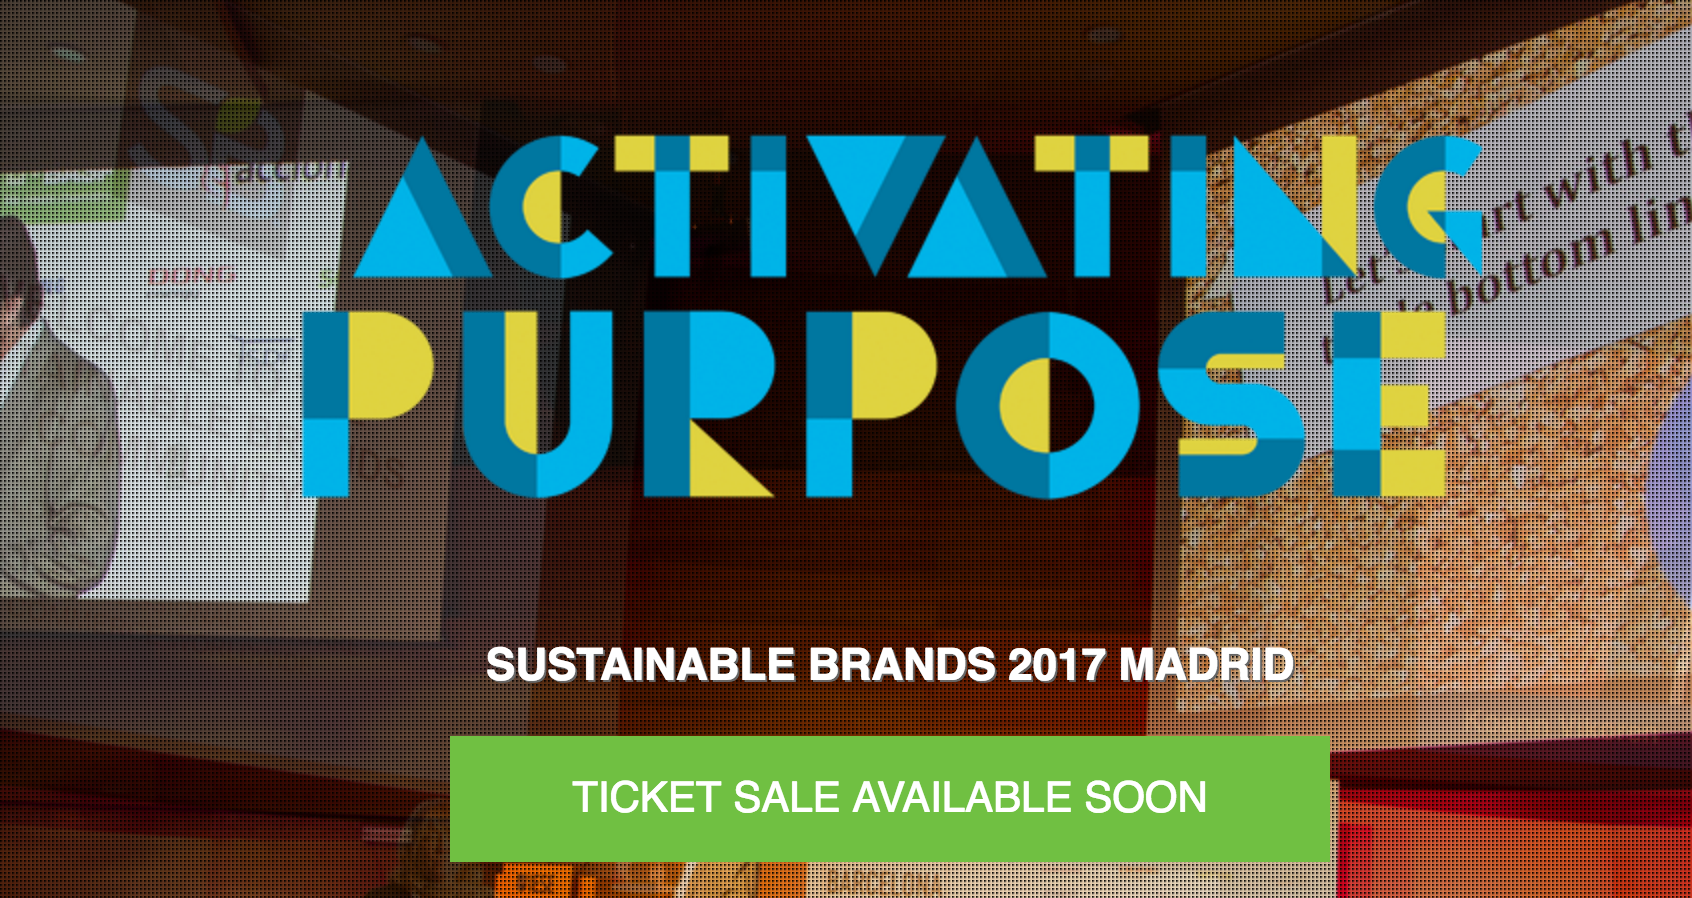 Sustainable Brands 2017 Madrid